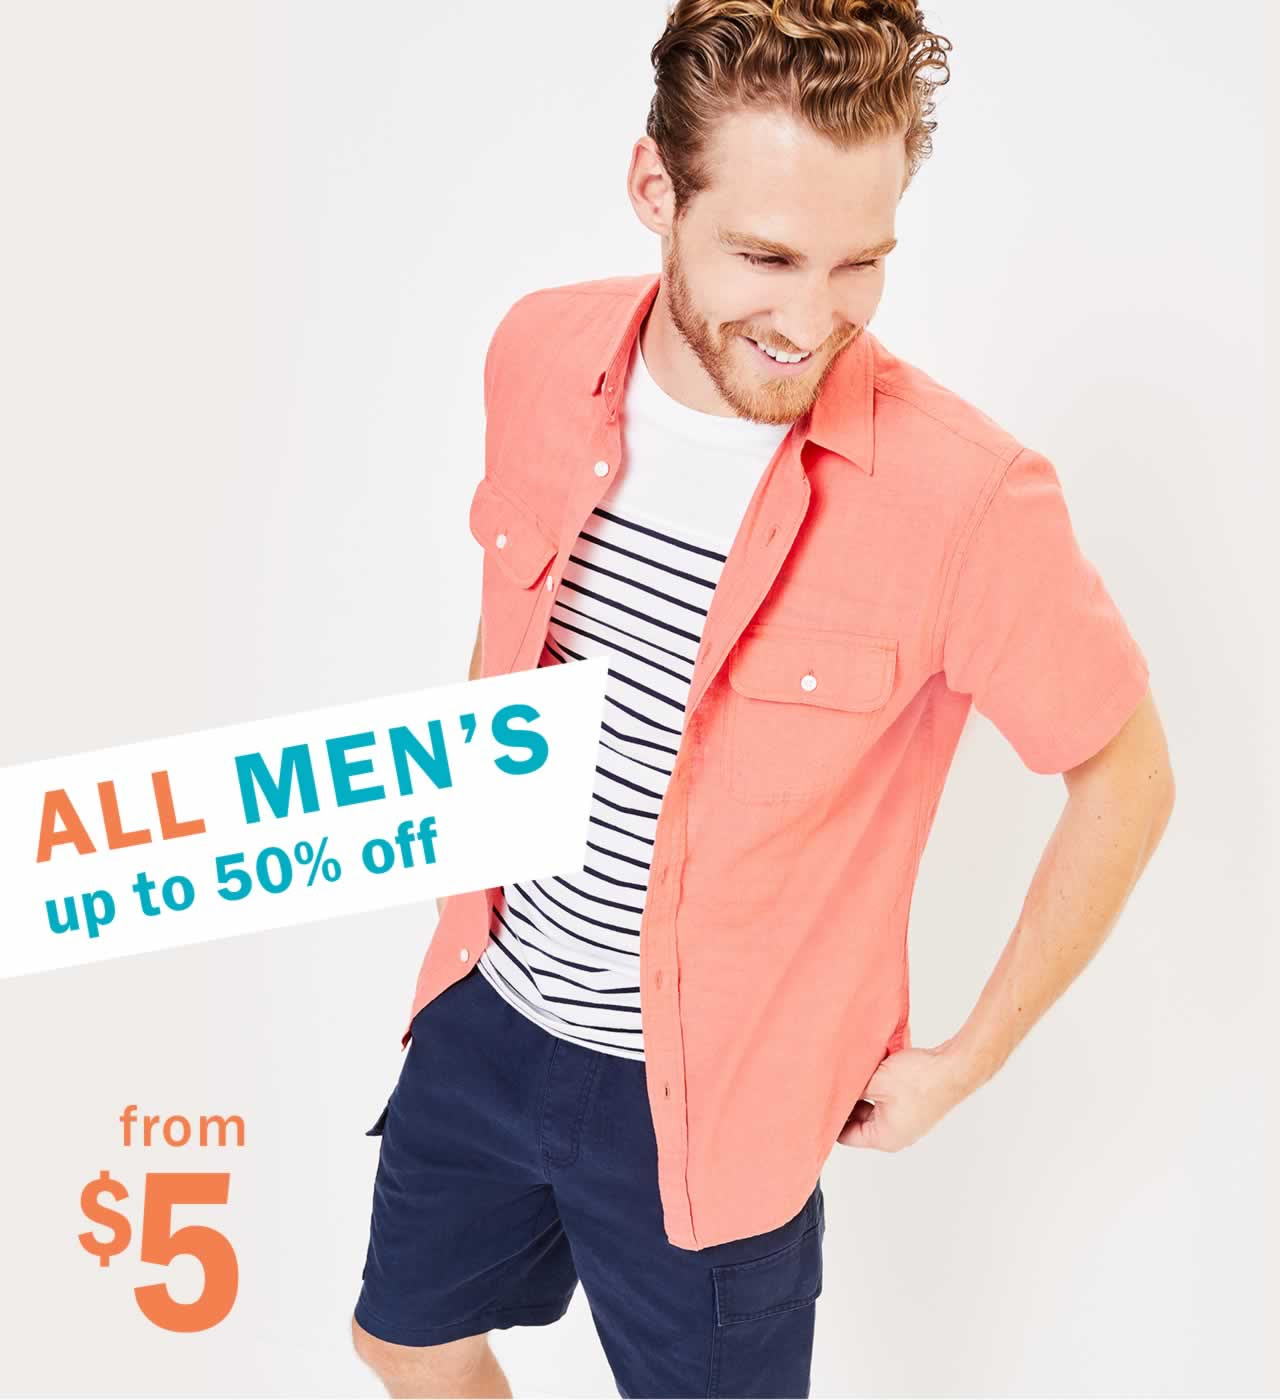 ALL MEN's up to 50% off from $5